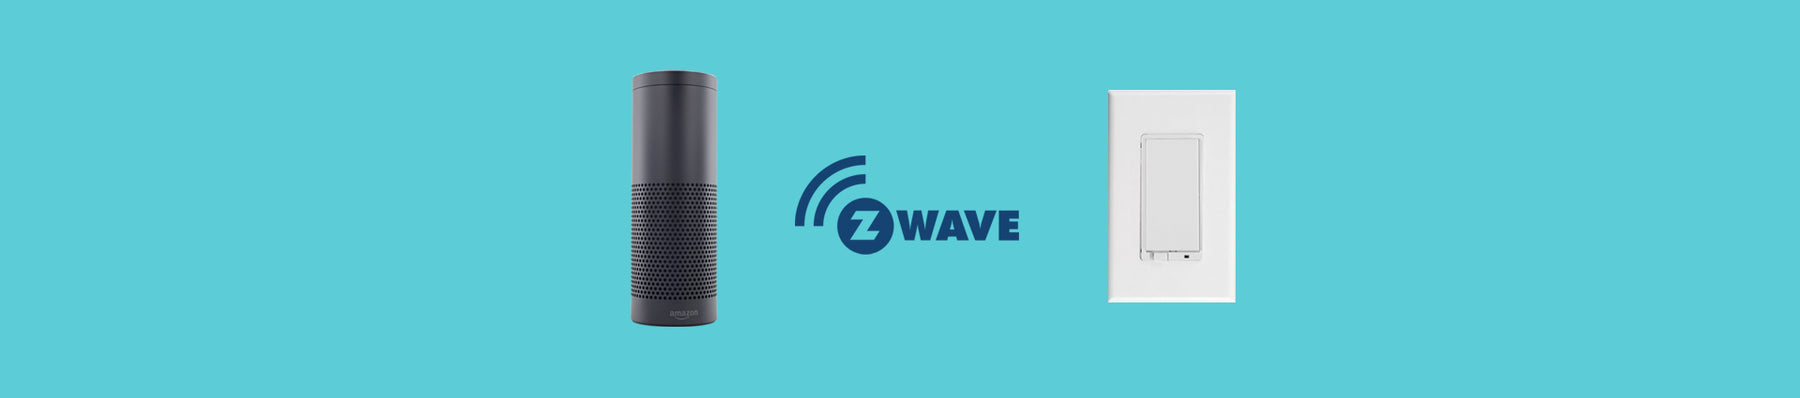 Amazon Echo (Alexa) Control For Your Z-Wave Devices